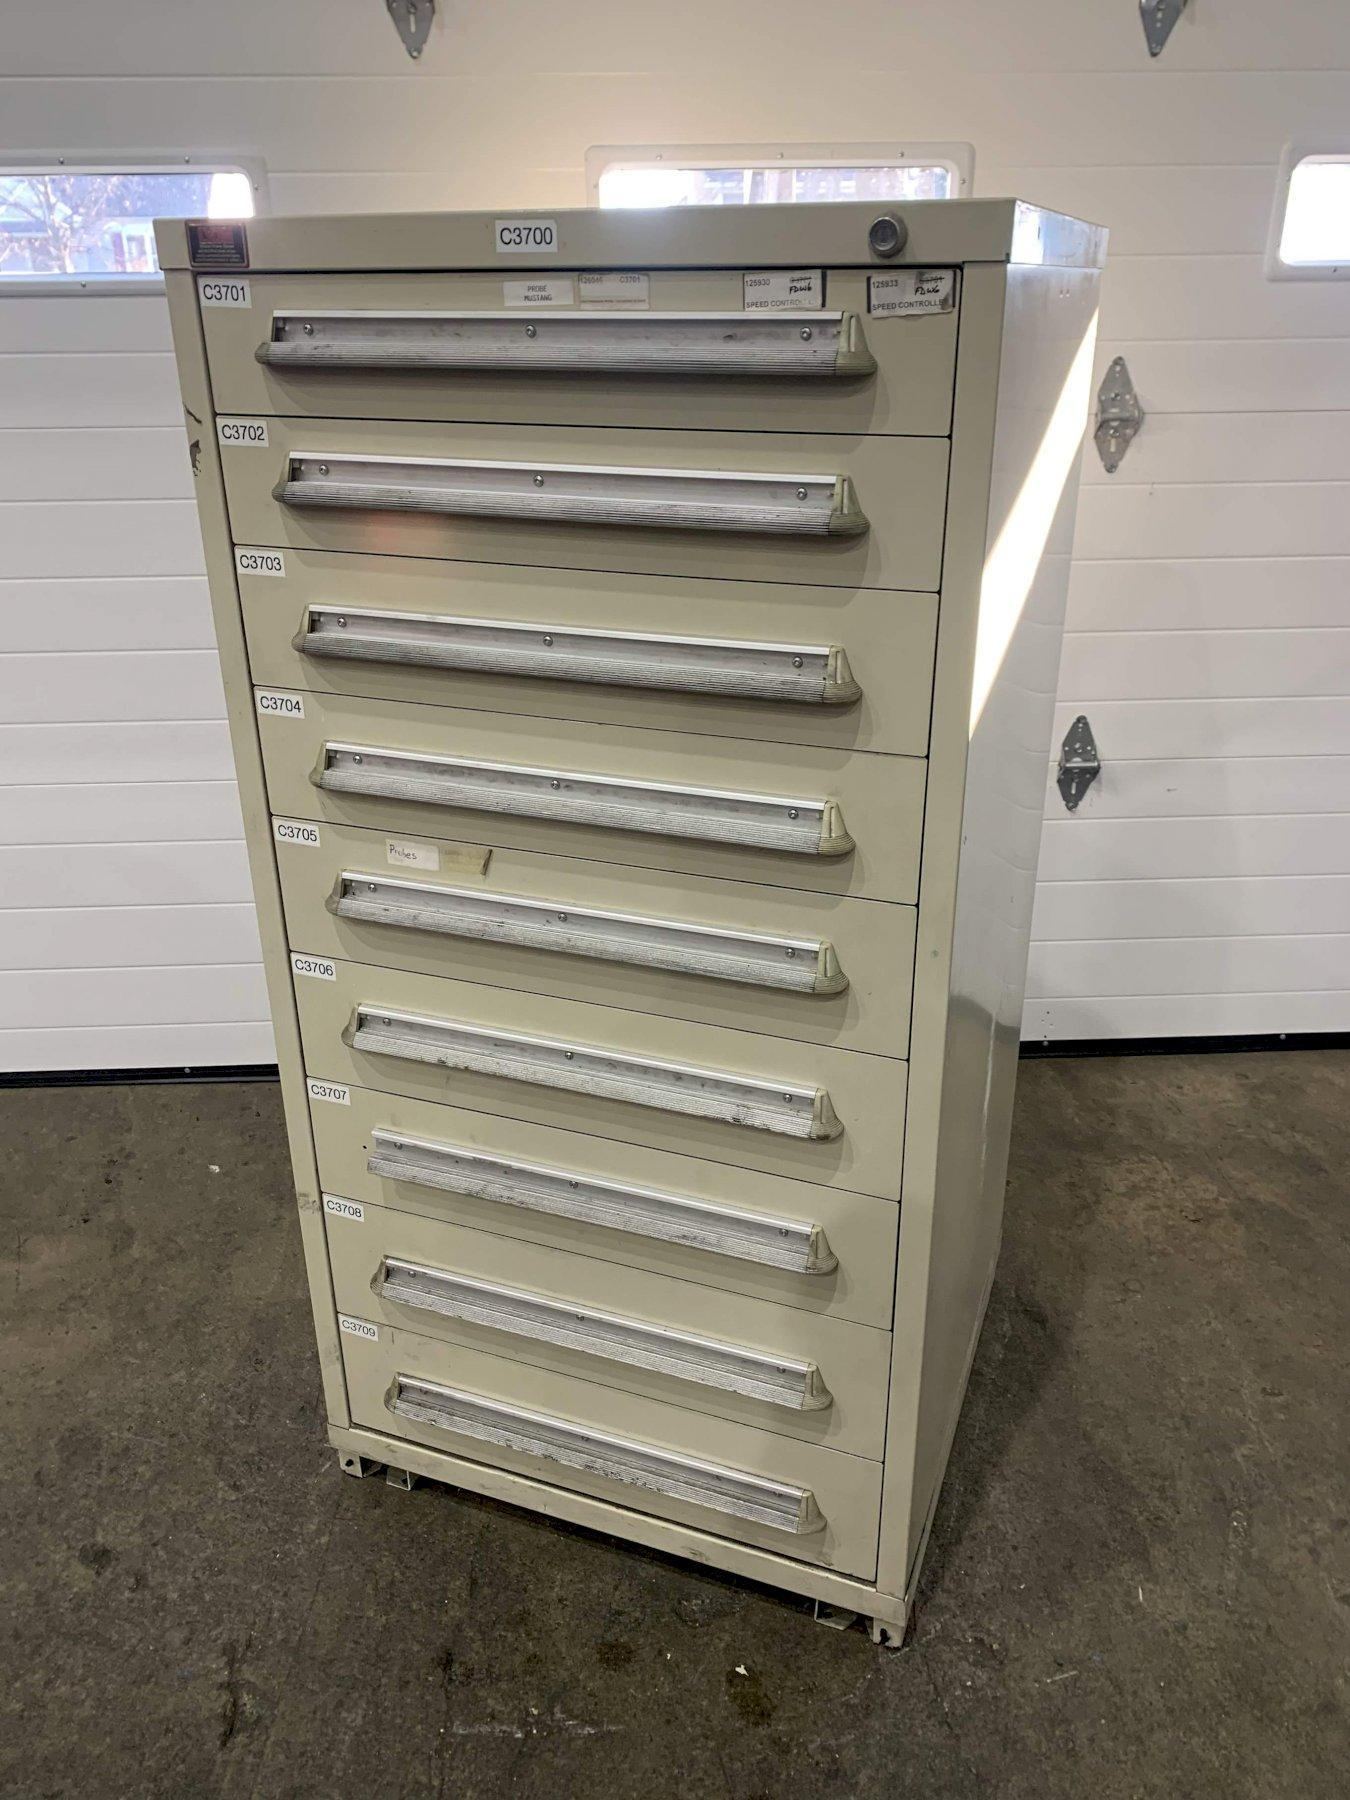 9 DRAWER LYON CABINET: STOCK #73709